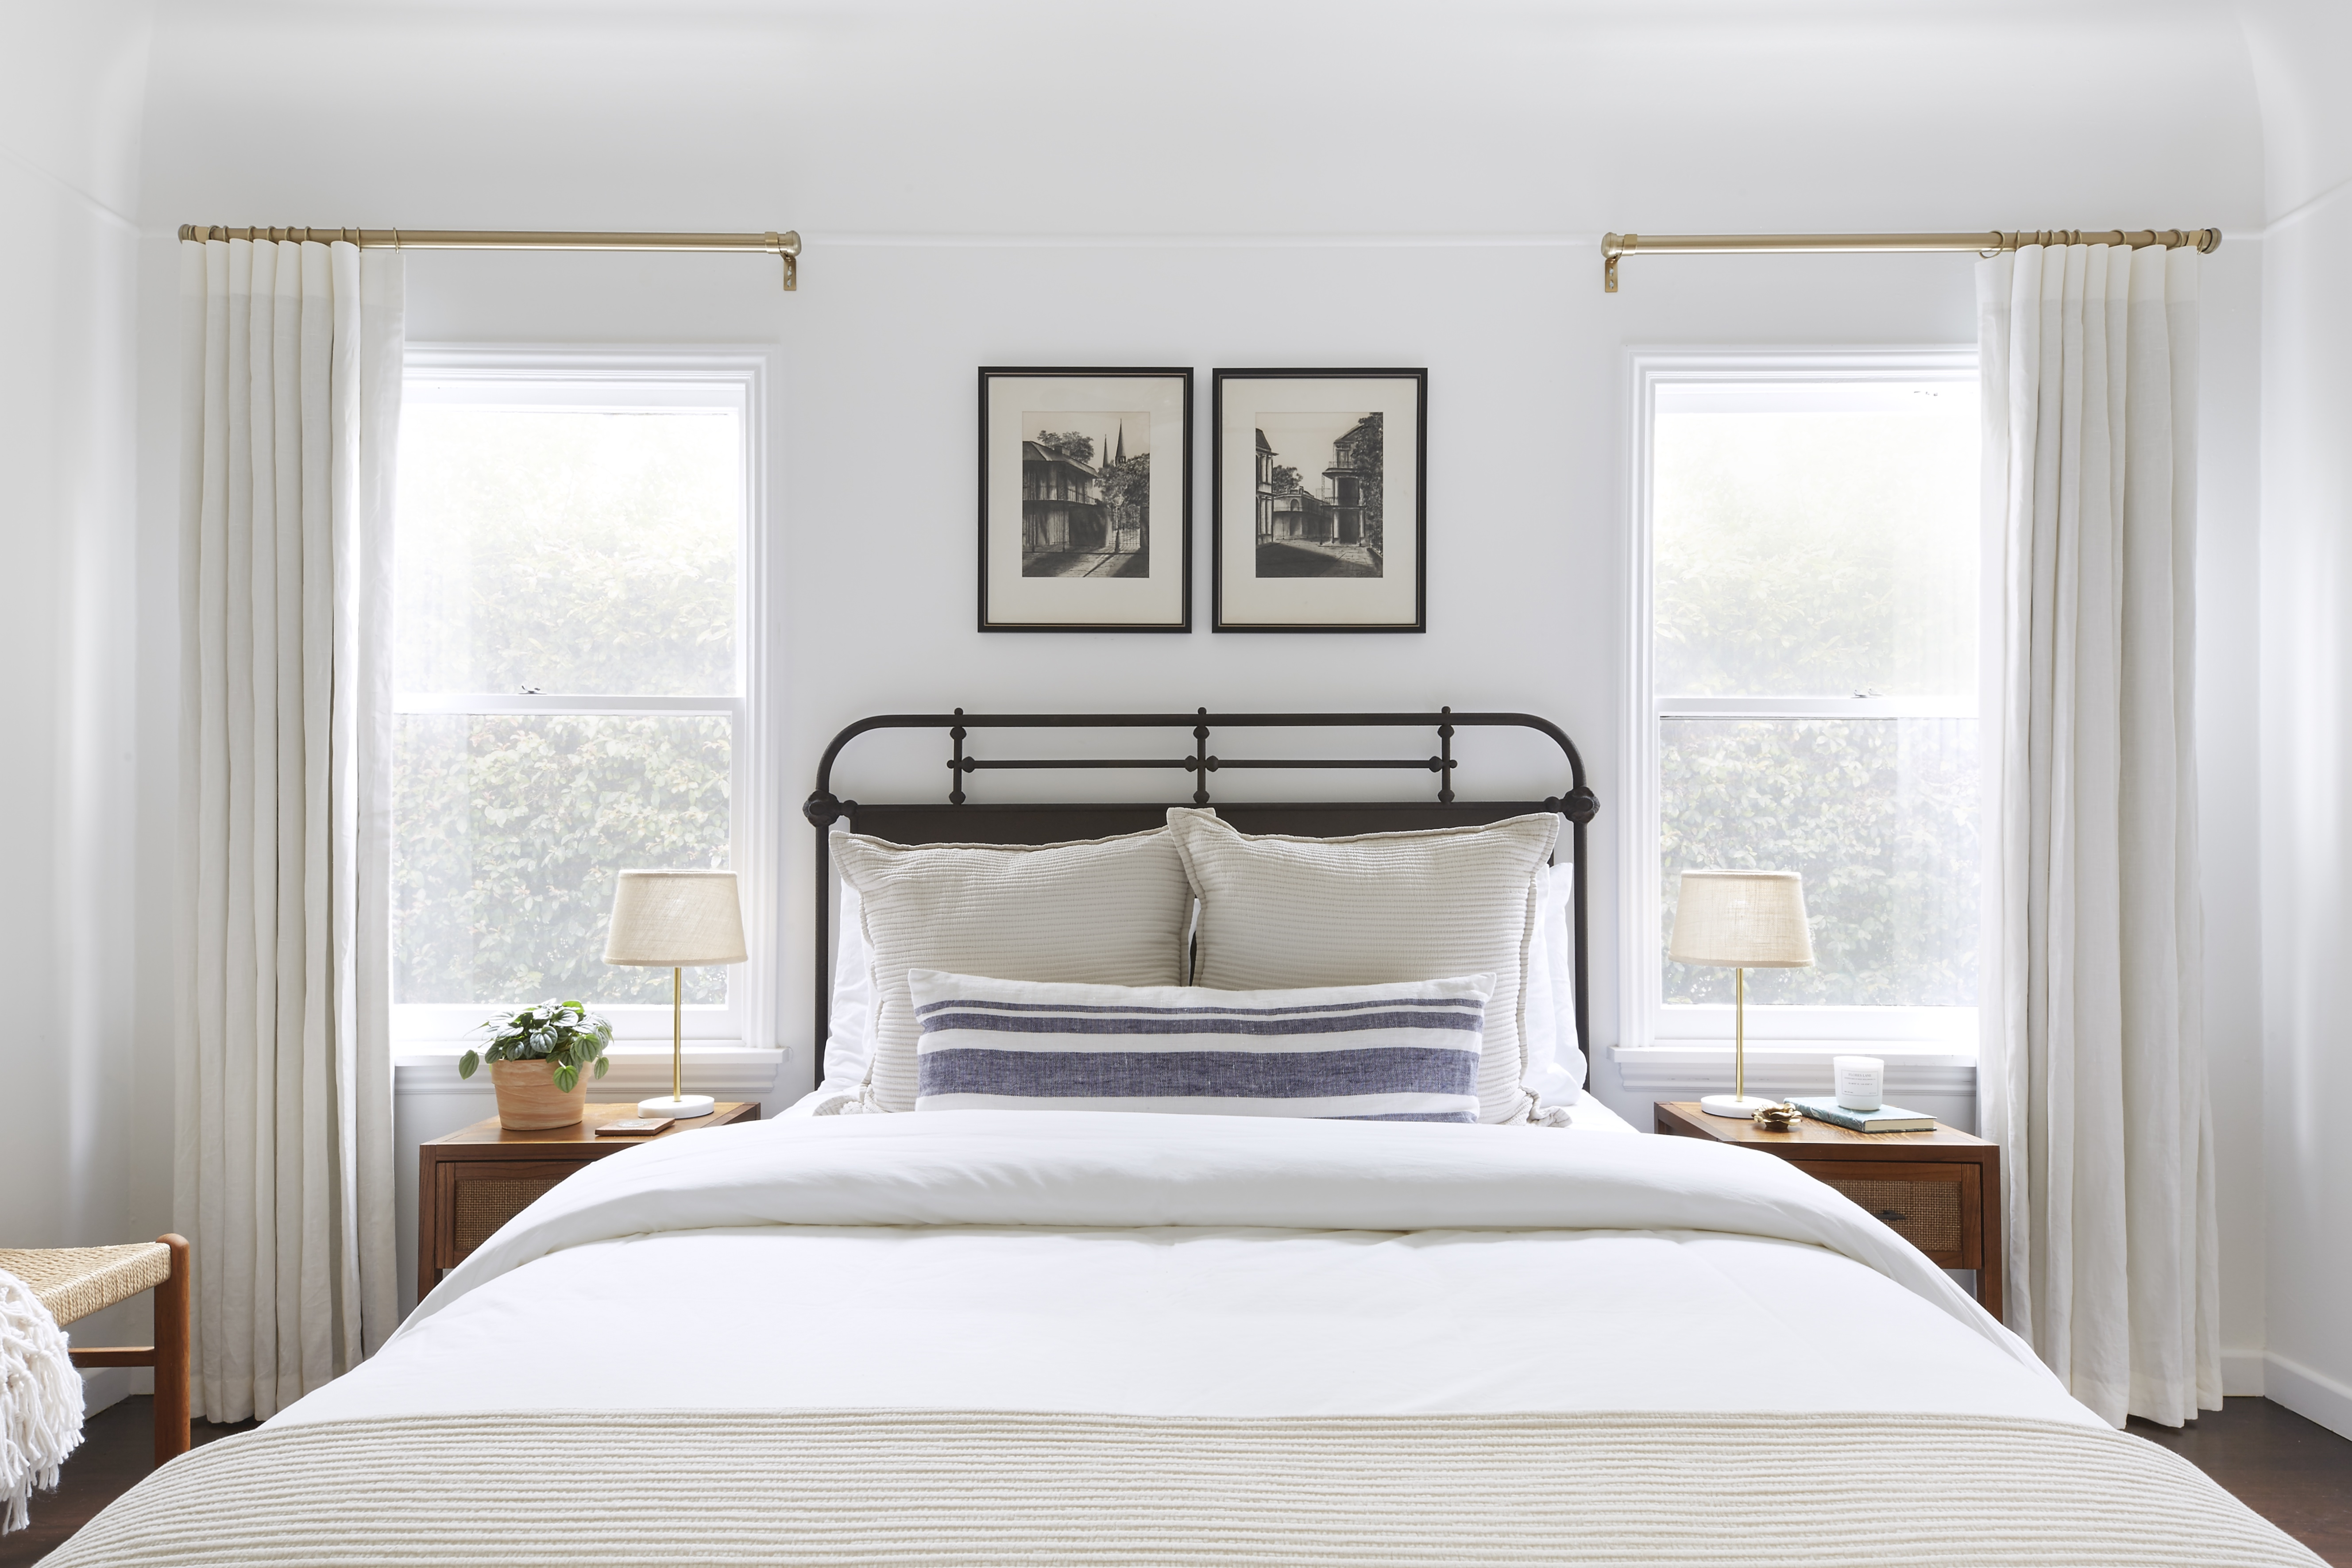 This modern master bedroom feels like a sleep sanctuary with Everhem's neutral linen drapes